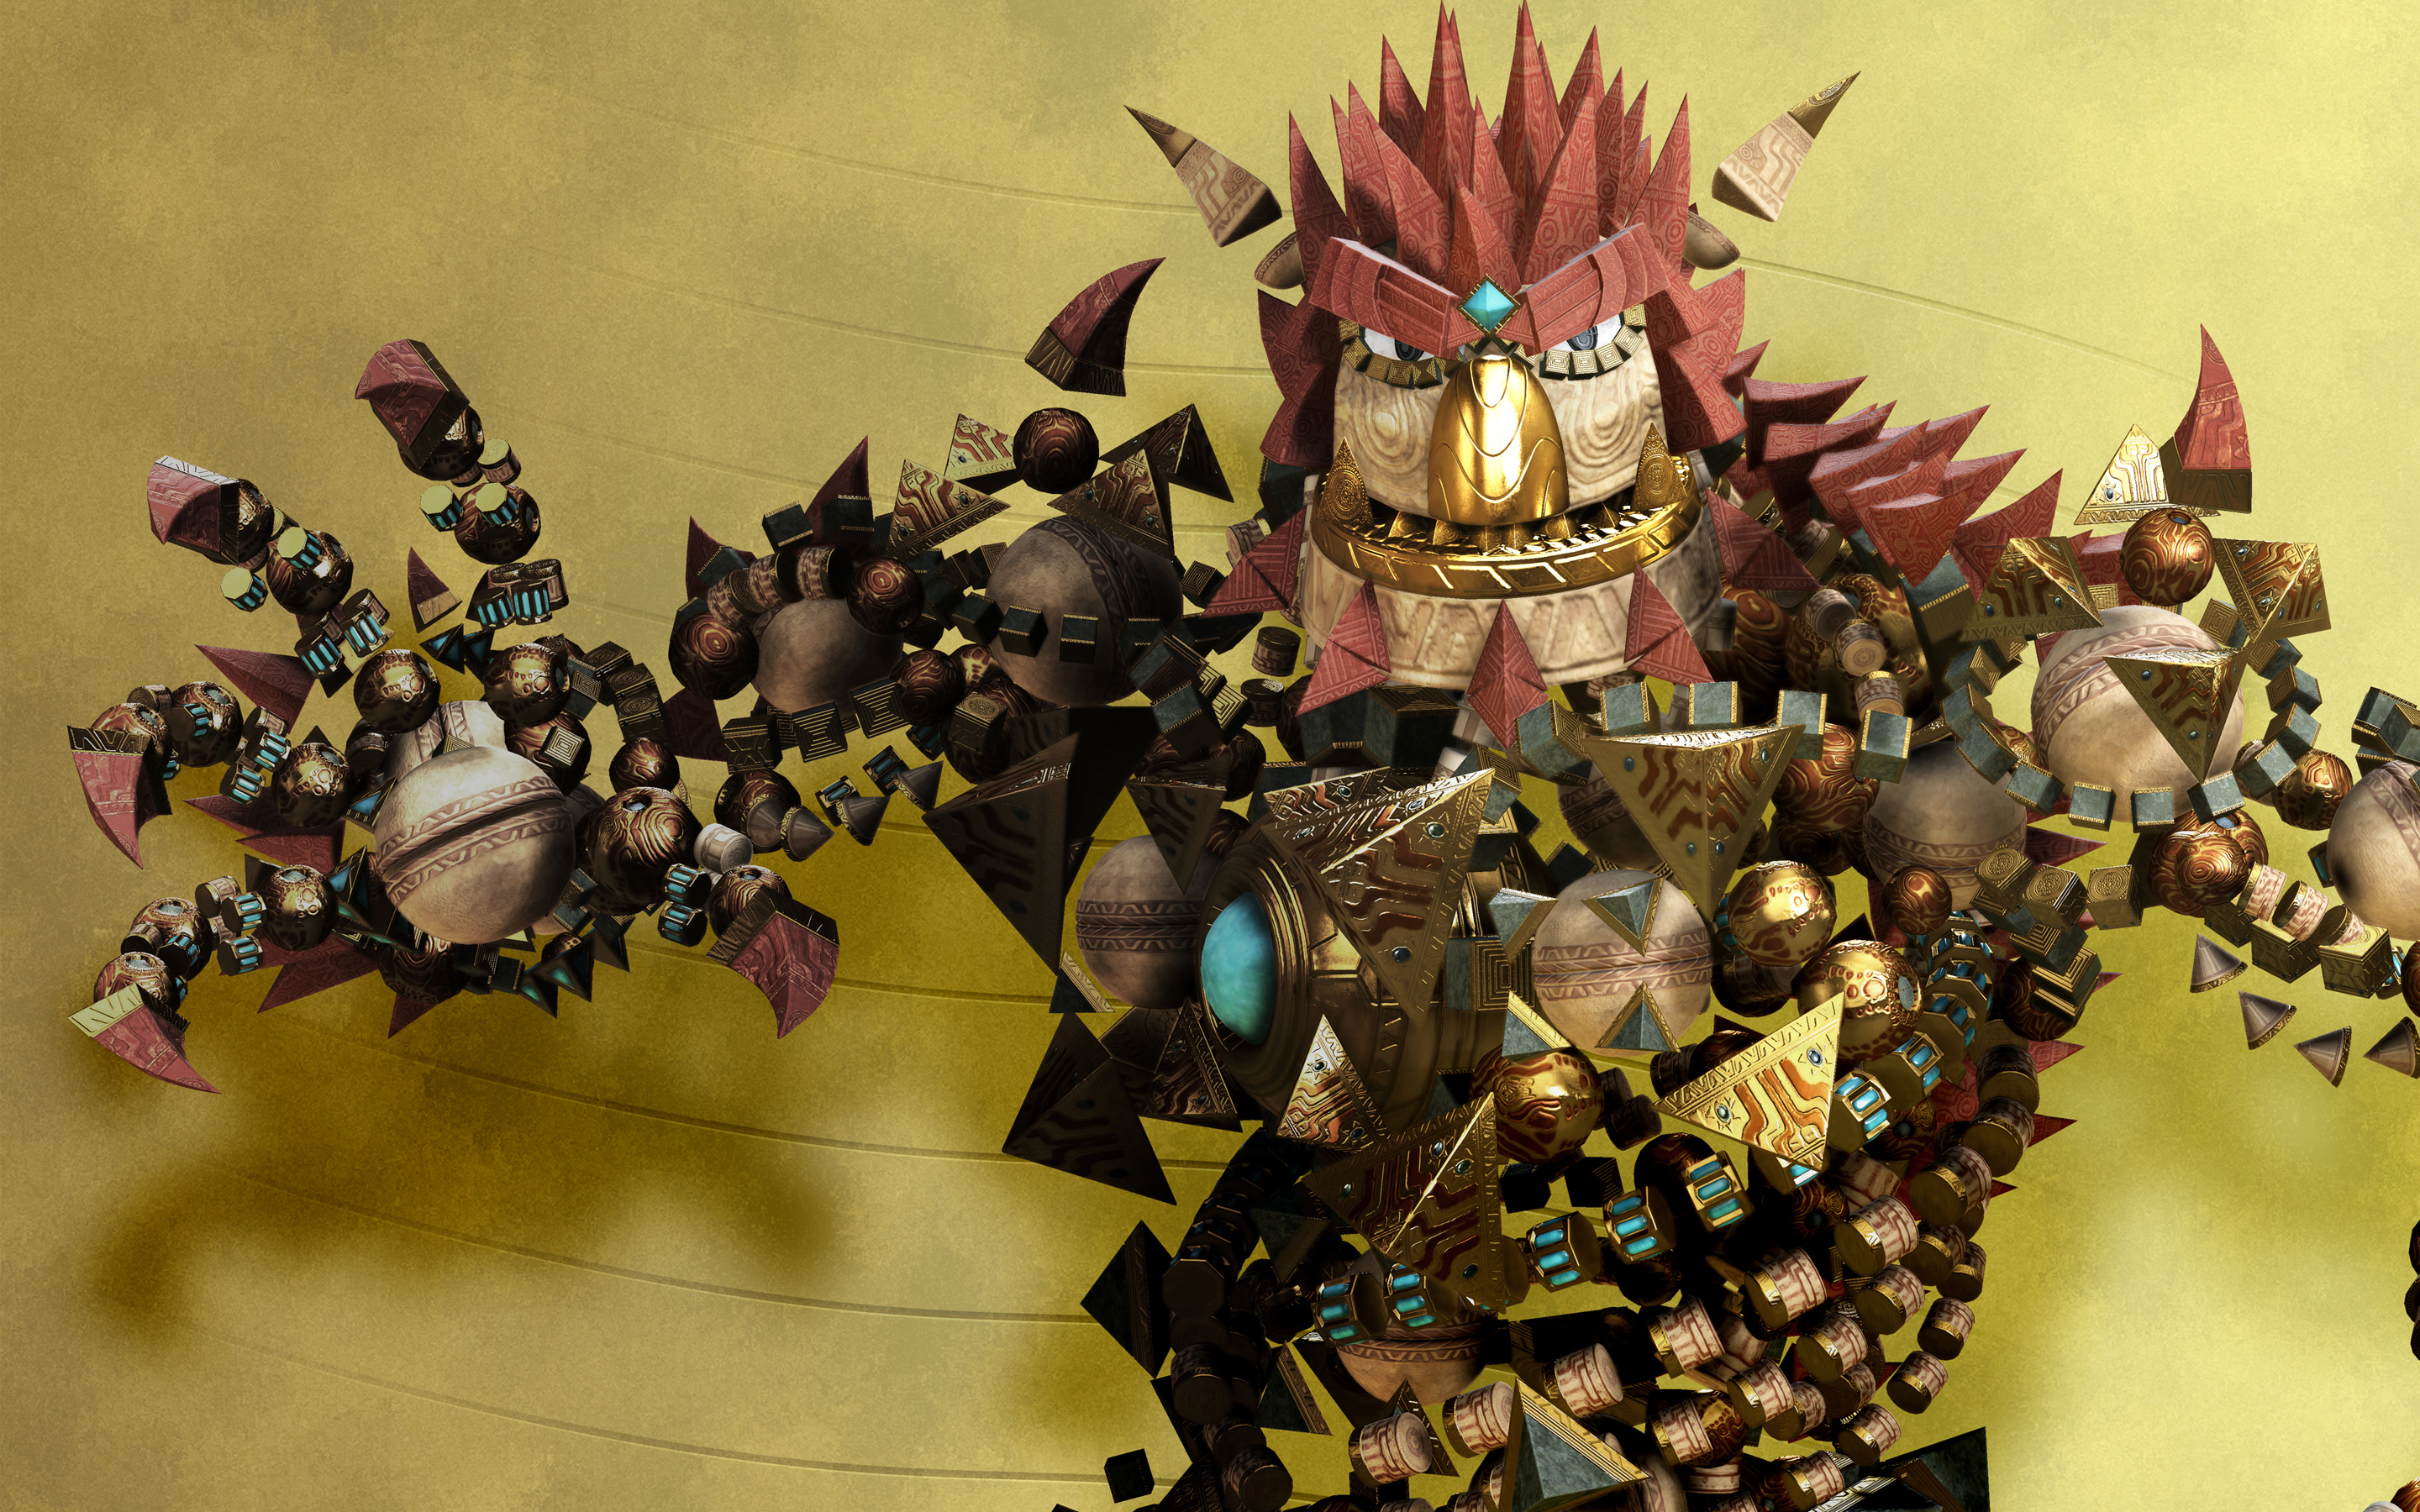 knack ps4 game #4153942, 2880x1800 | all for desktop